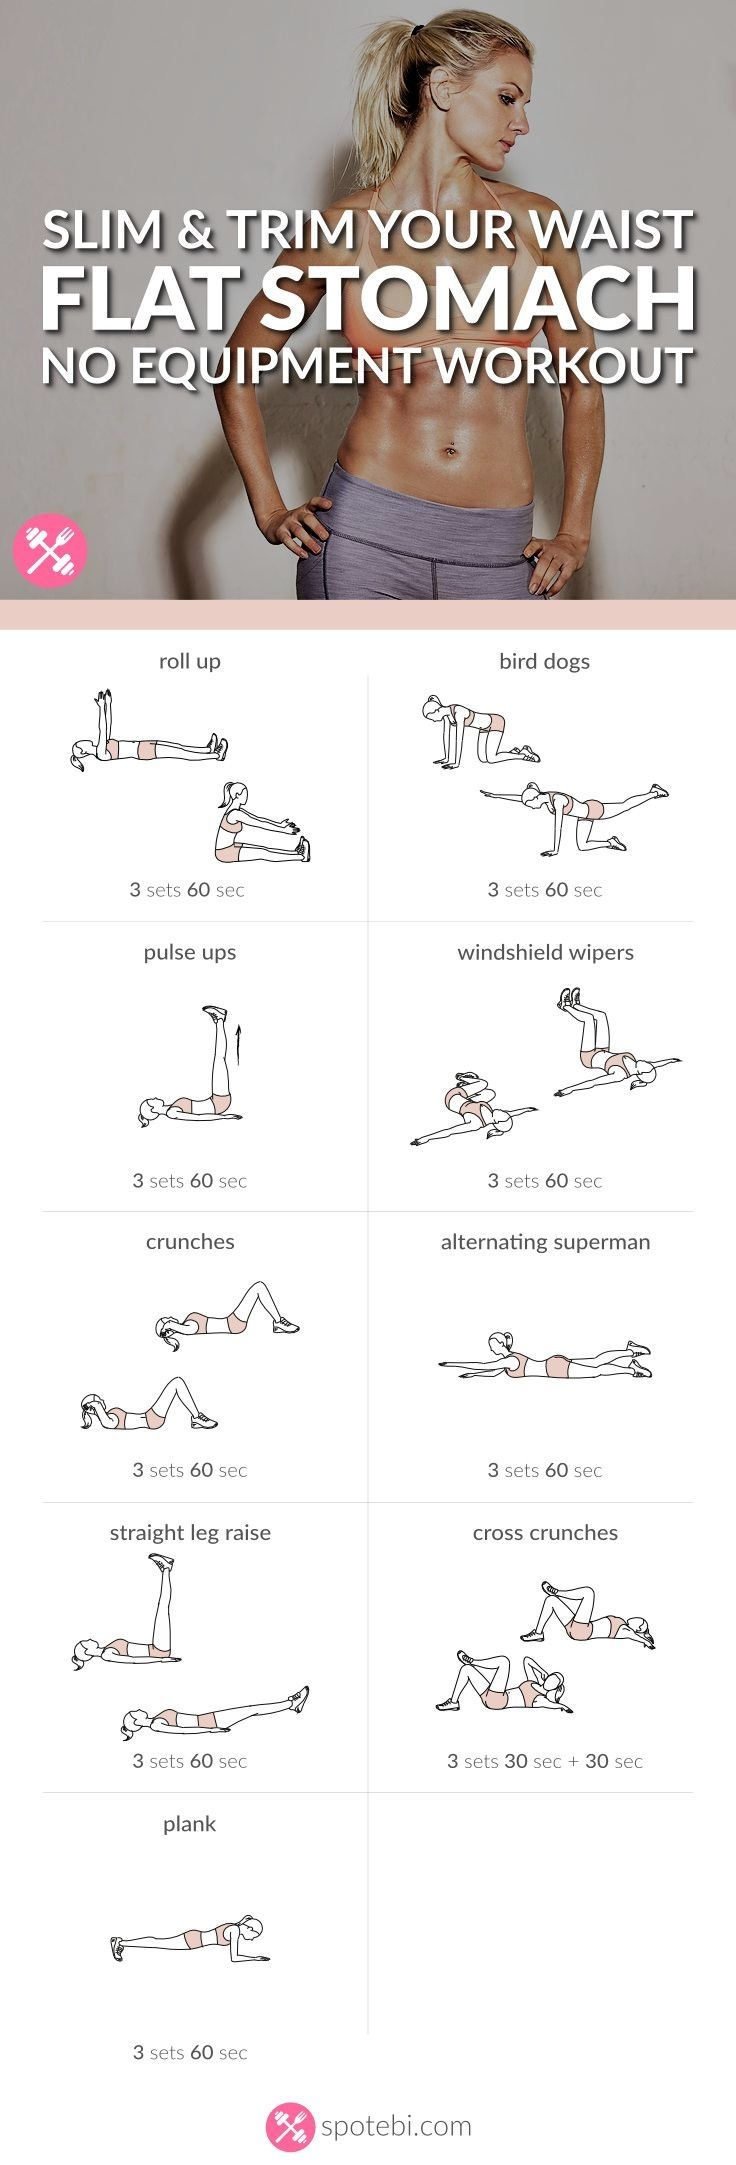 Want to easily whip your tummy into shape? Try this at home flat stomach workout for women, to sculpt your abs in no time, and get a slim, toned and trim belly. http://www.spotebi.com/workout-routines/flat-stomach-workout-slim-trim-waist/ #weightloss